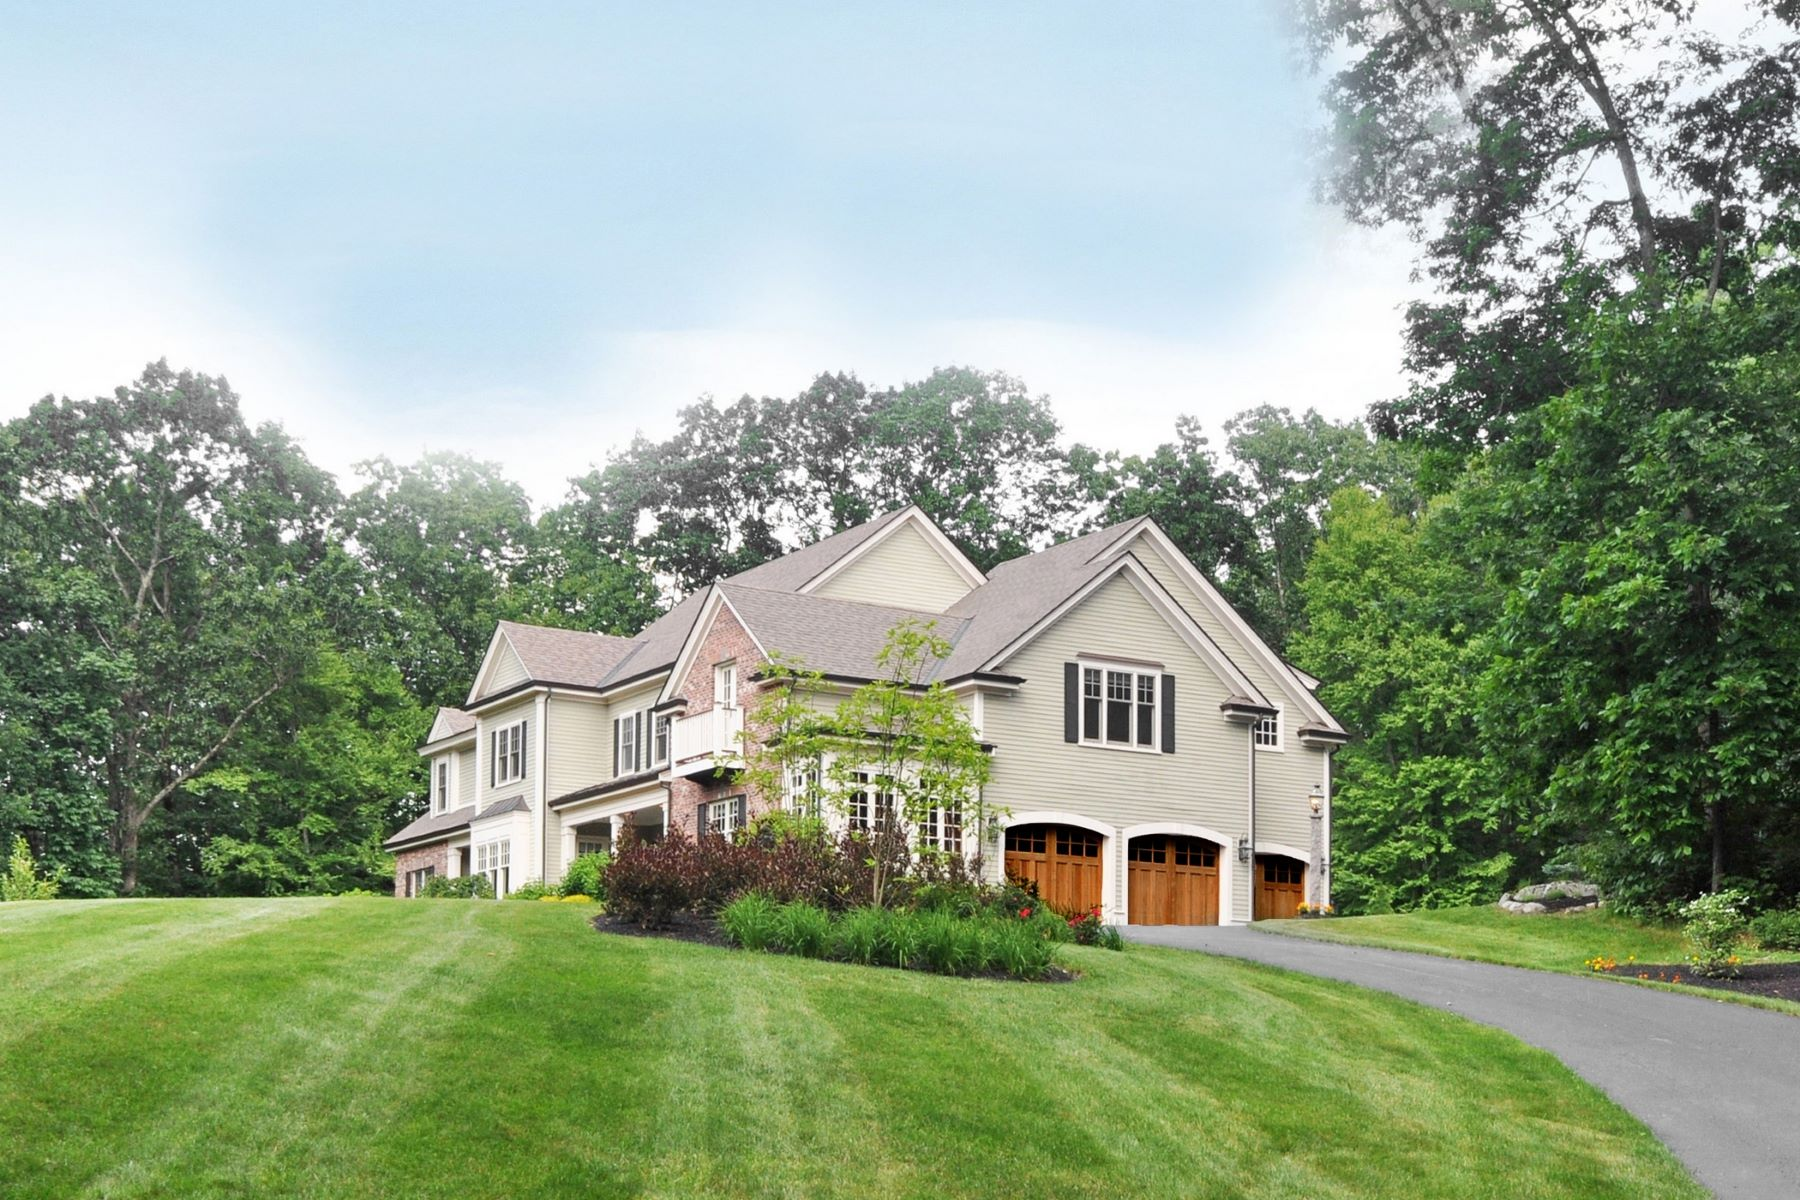 Single Family Homes for Sale at 4 Alcorn Crossing, Westford 4 Alcorn Crossing Westford, Massachusetts 01886 United States